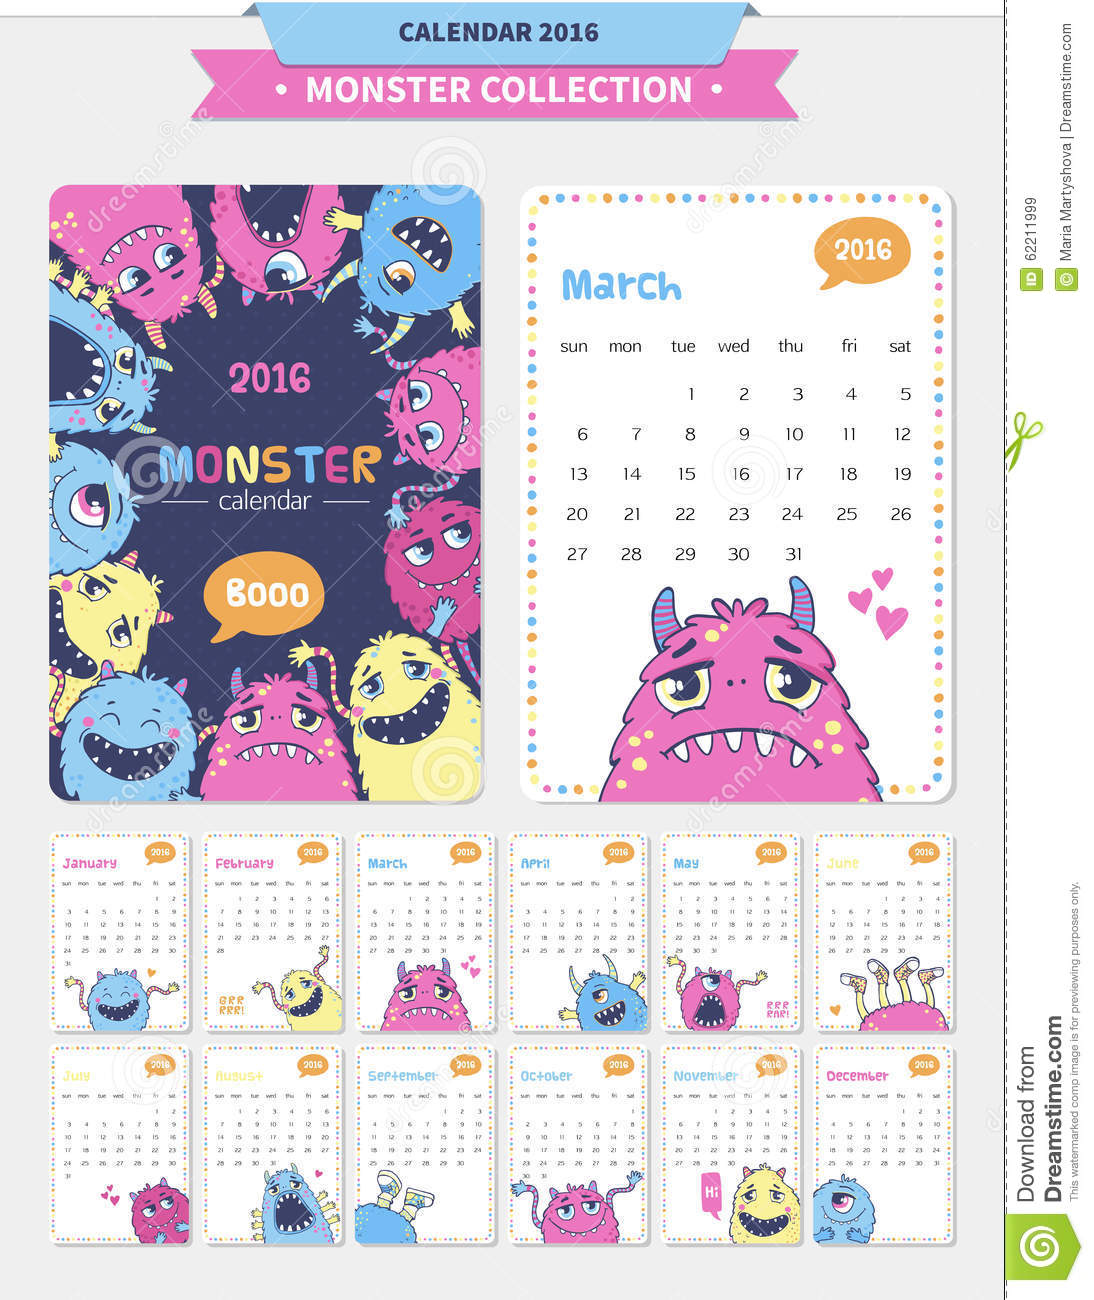 Cute Calendar Illustration : Cute monster illustration stock vector image